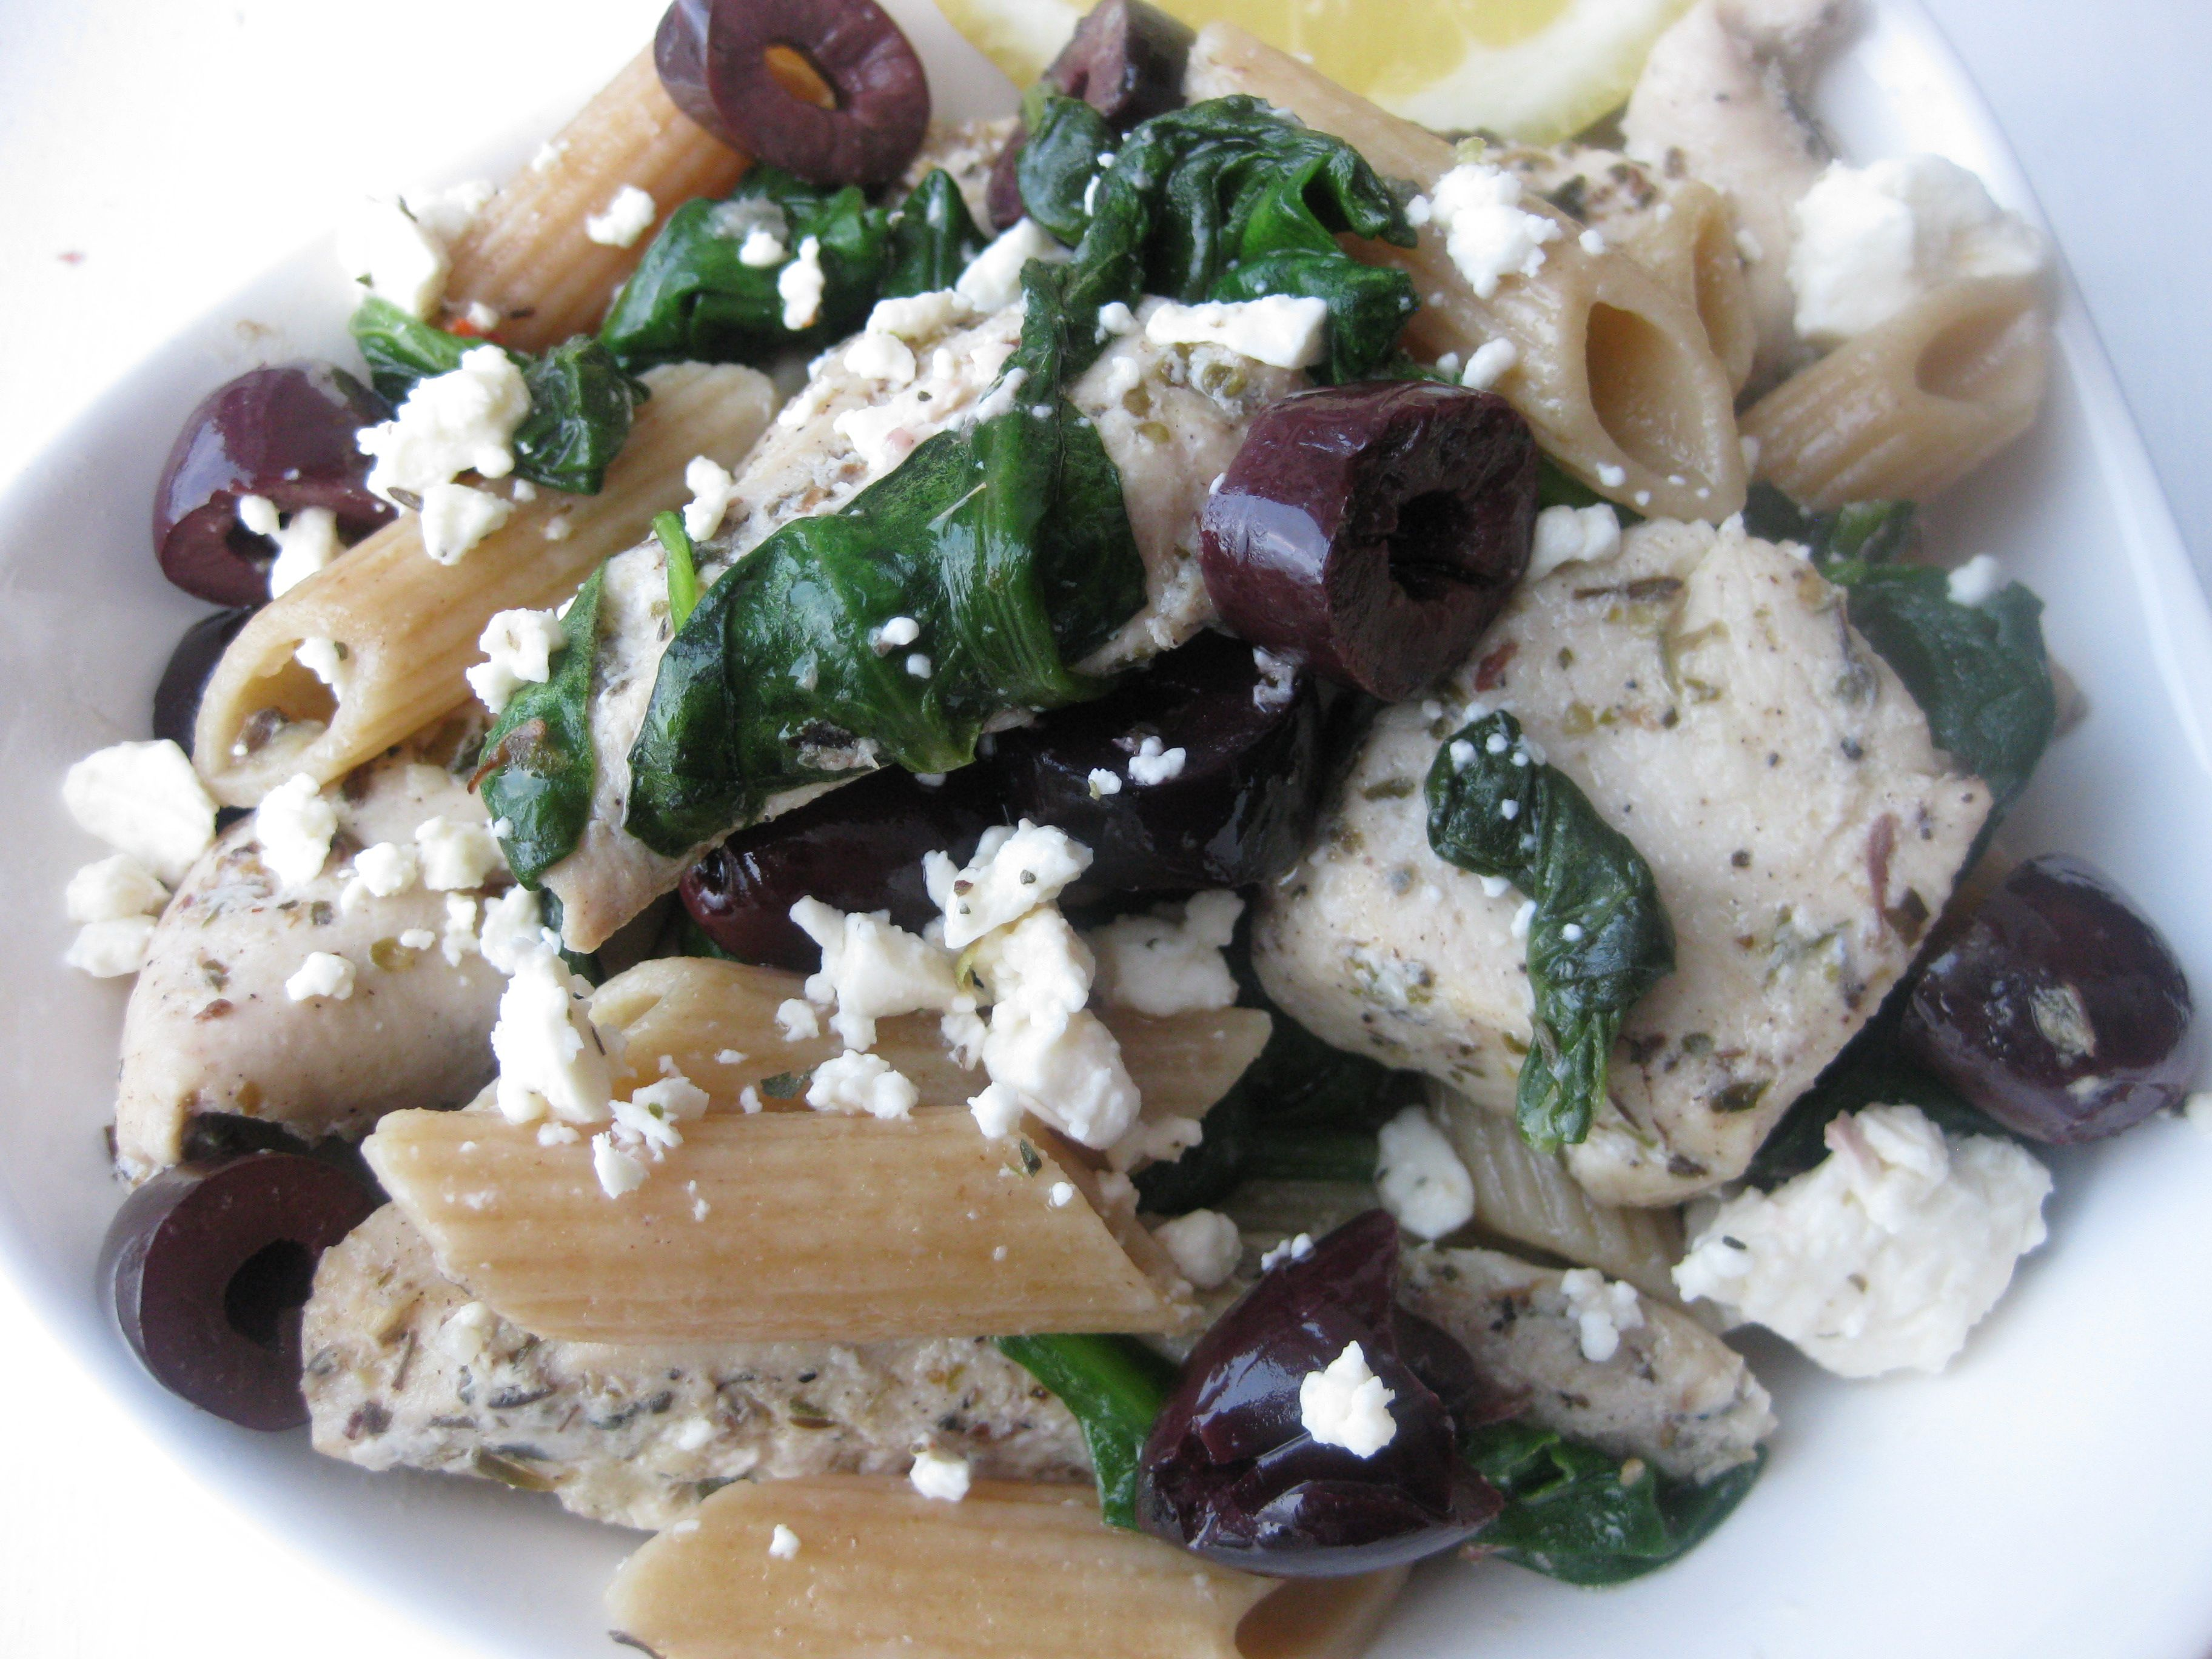 Greek Pasta Salad with Chicken, Feta, and Olives